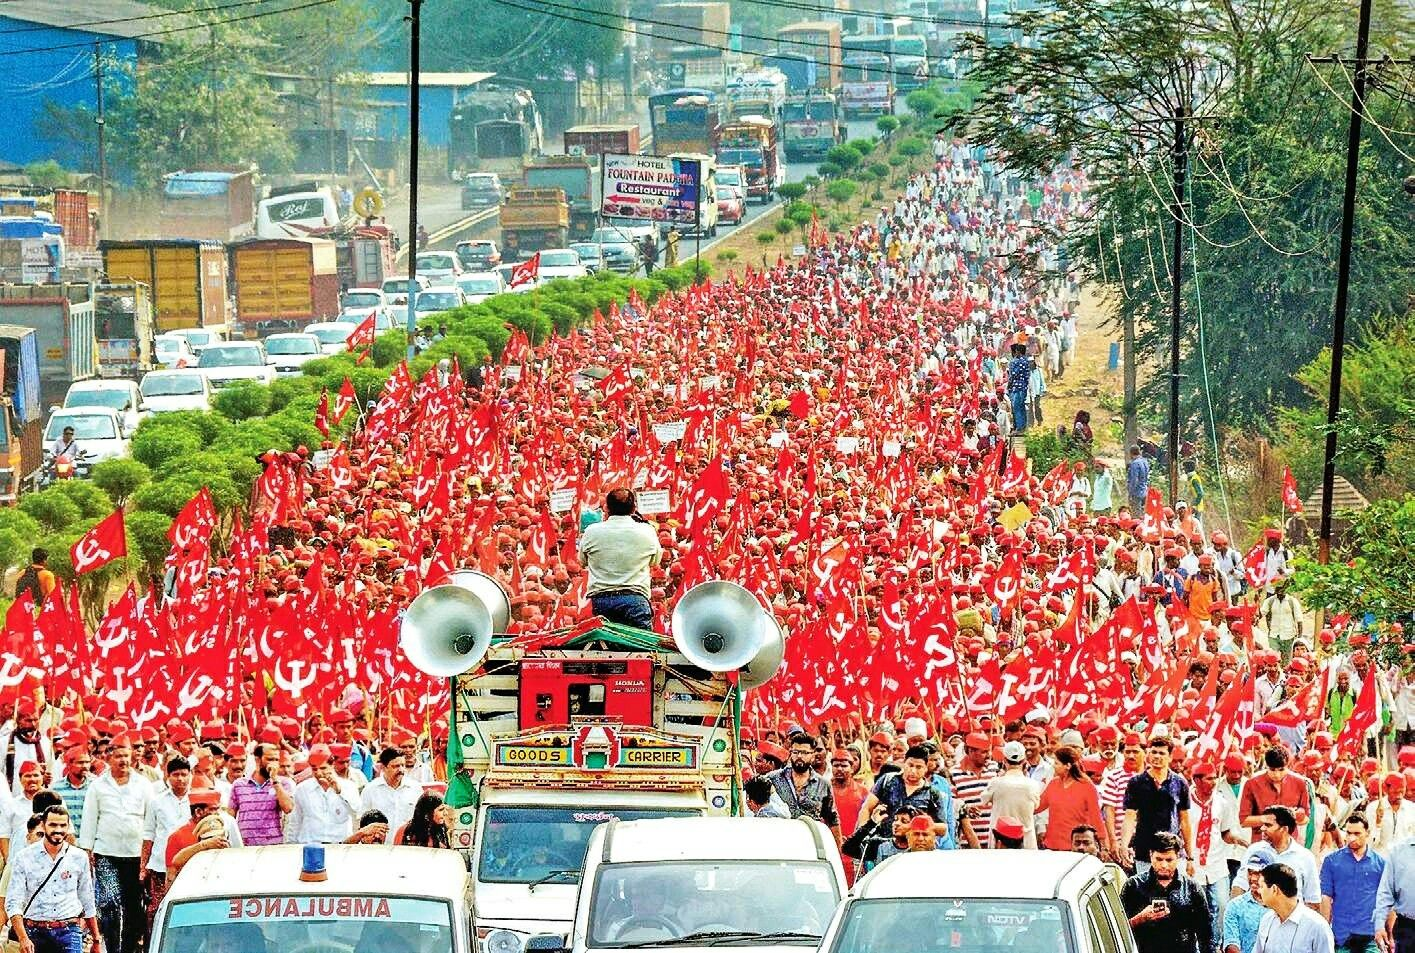 After Walking 200 Km The Red Sea Of More Than 50 000 Farmers Have Reached Mumbai S Azad Maidan Now Asking For Their Rightful Compen Farmer Maharashtra India